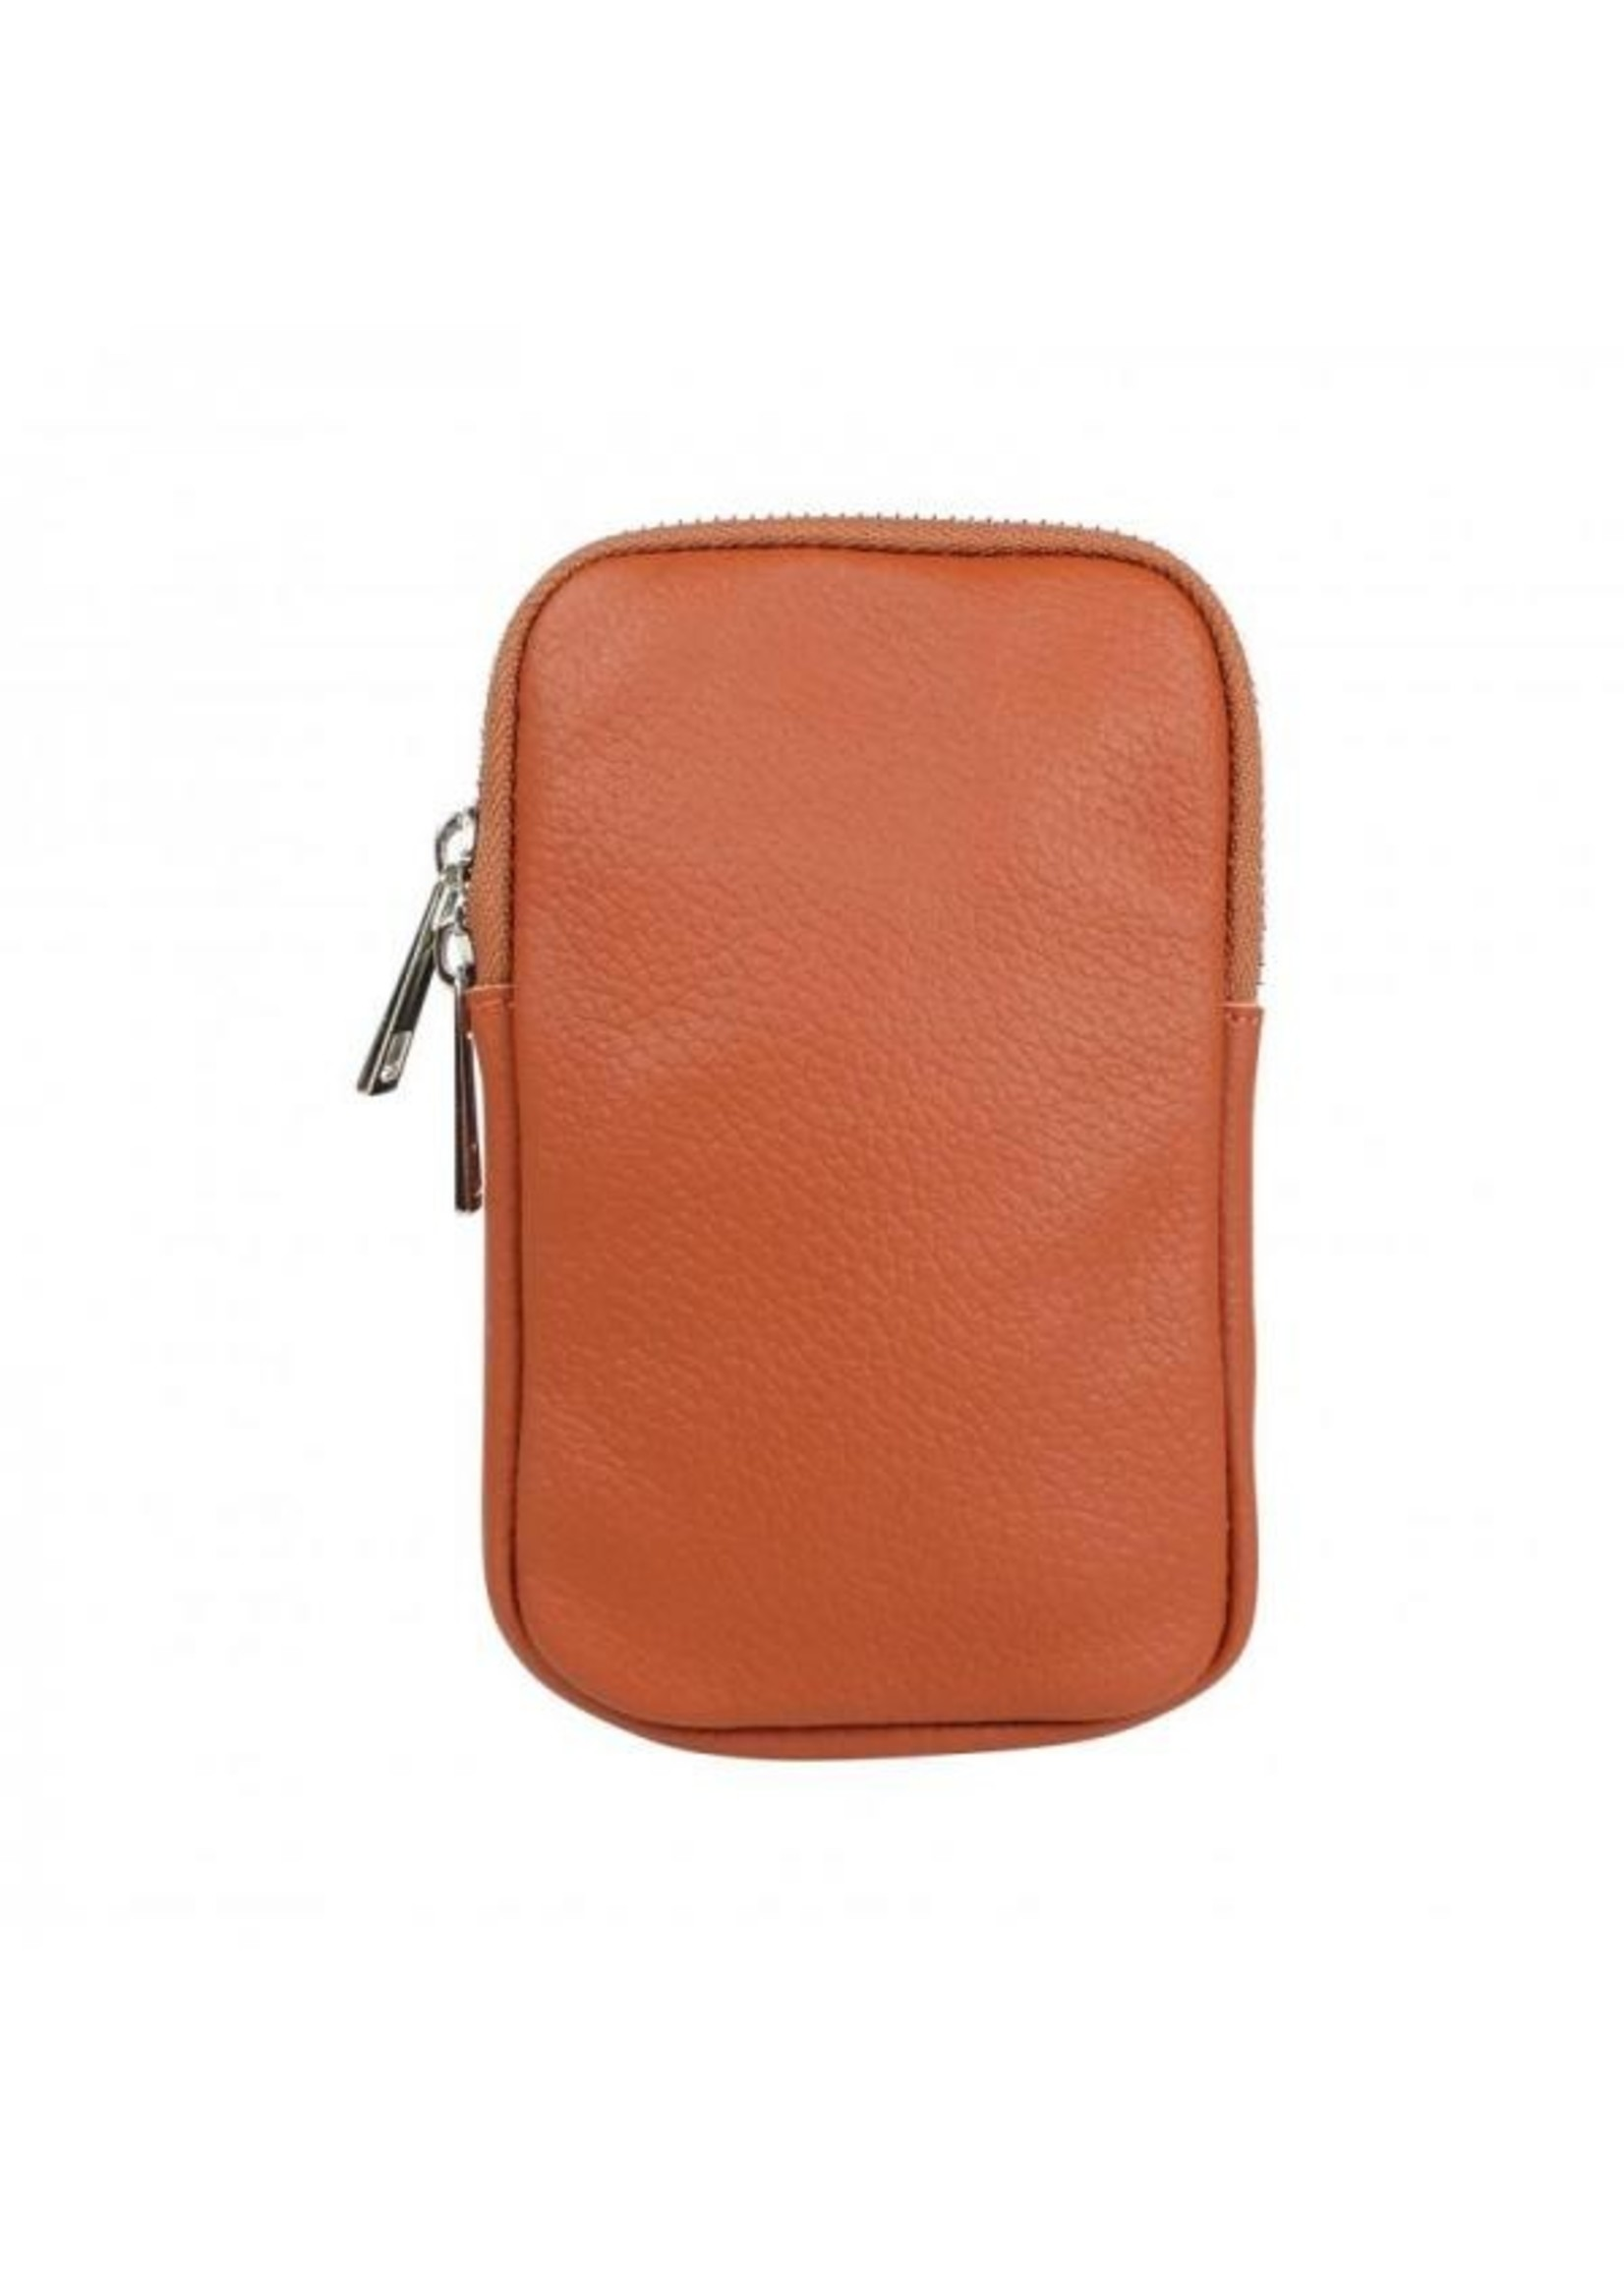 Baggyshop Call me up leather - Roest (zilver)